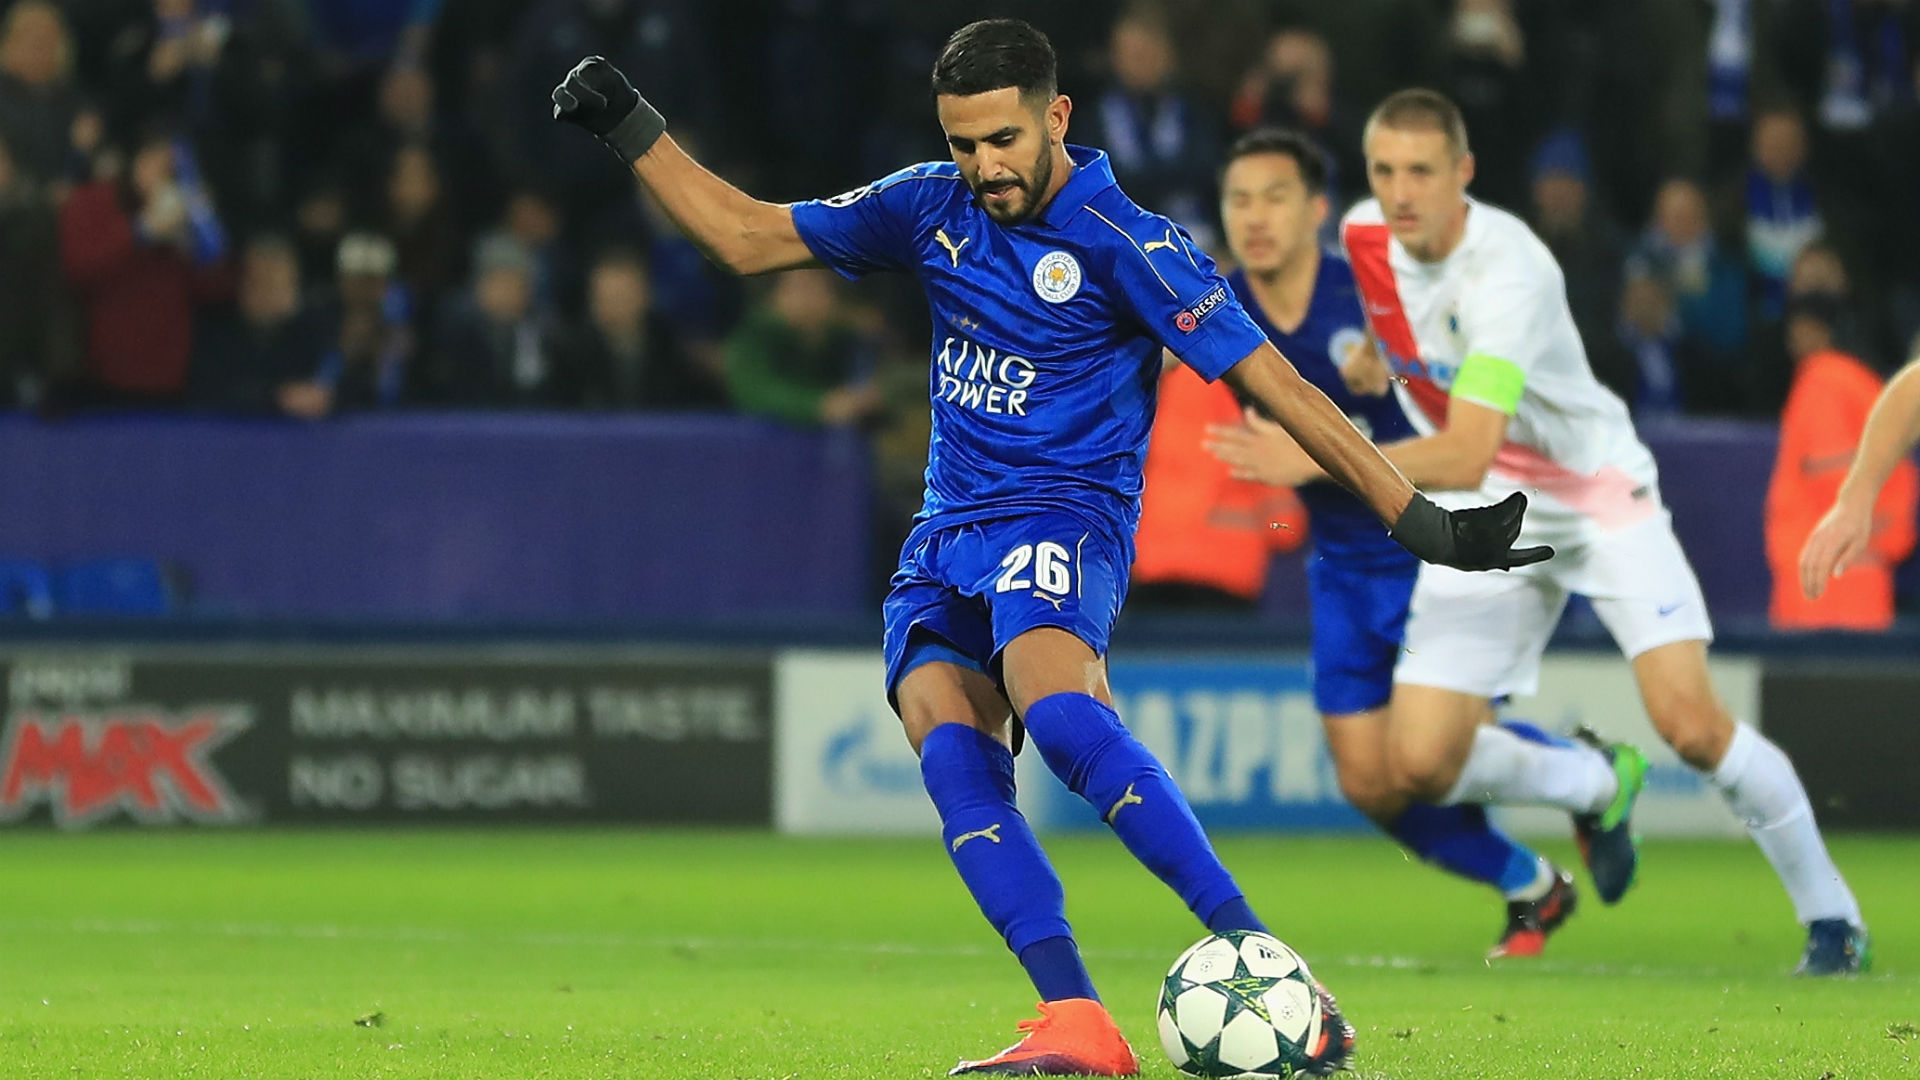 Leicester beats Brugge 2-1, advances in Champions League